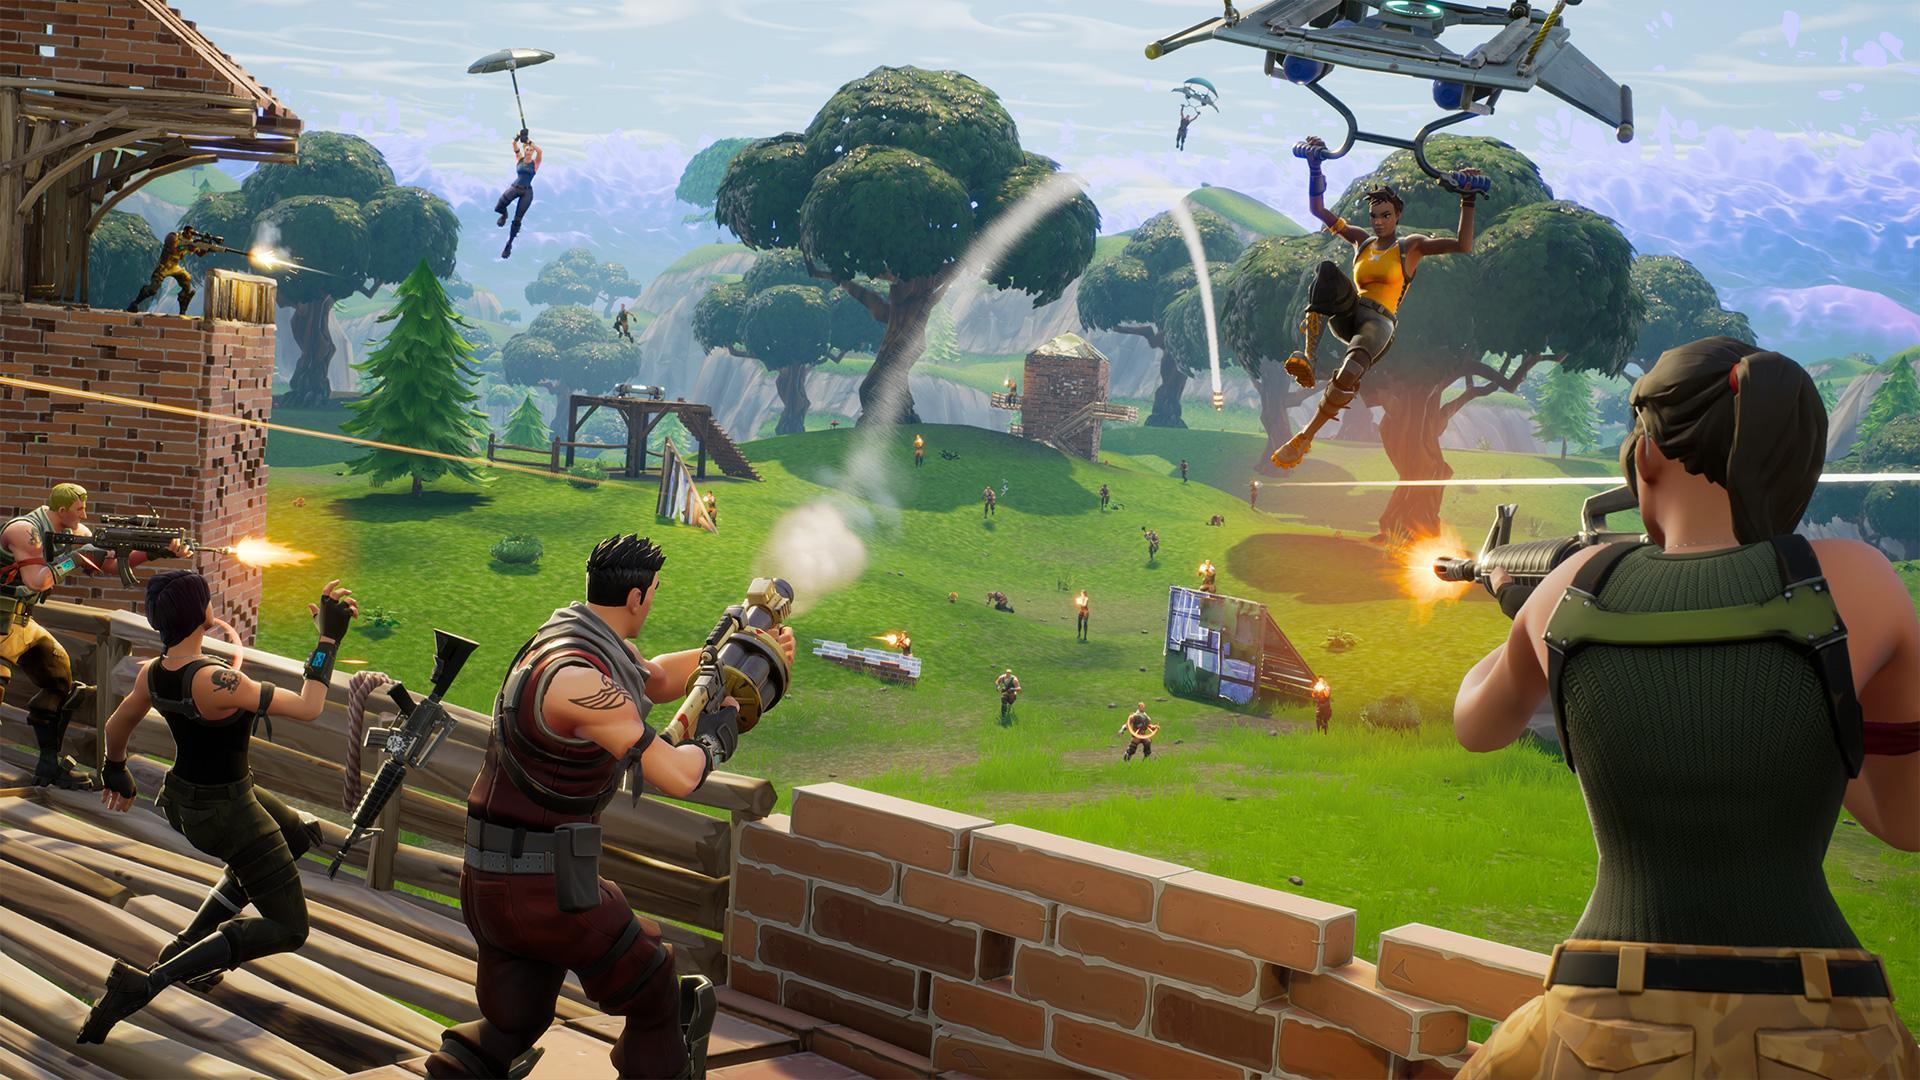 Fortnite Battle Royale' Is Getting A New 50 Vs 50 Mode, But